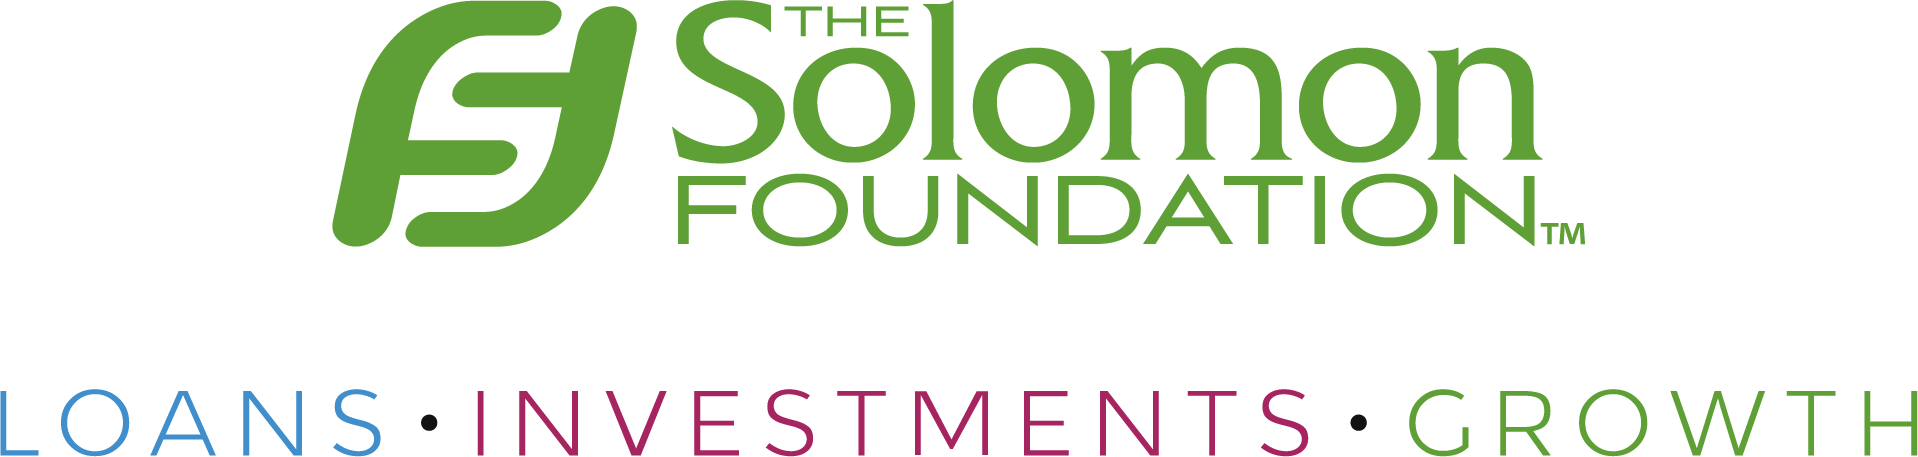 Solomon Foundation - Dinner with CEO @ The Cd'A Resort - Kidd Island Bay Banquet Room | Coeur d'Alene | Idaho | United States